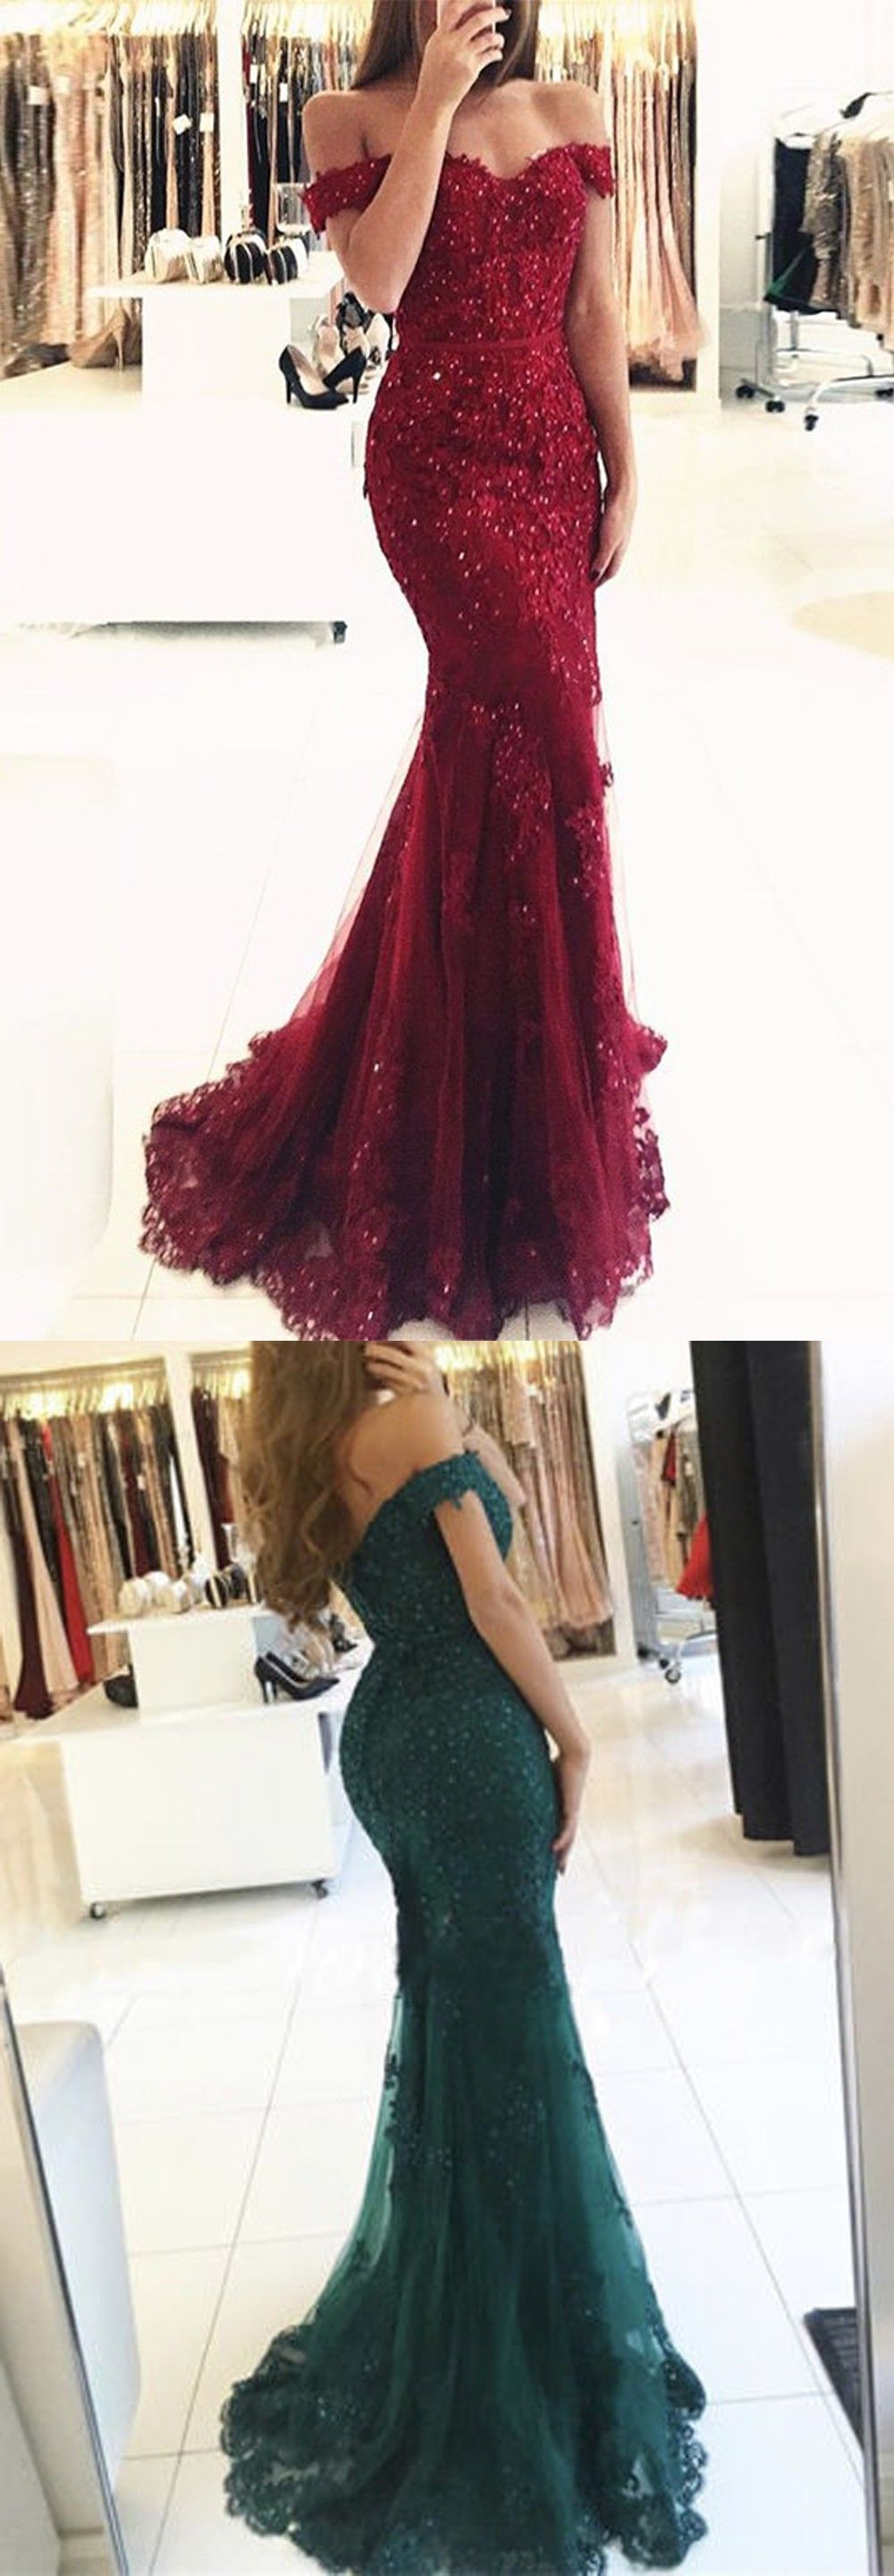 Mermaid offtheshoulder dark red tulle prom dress with beading